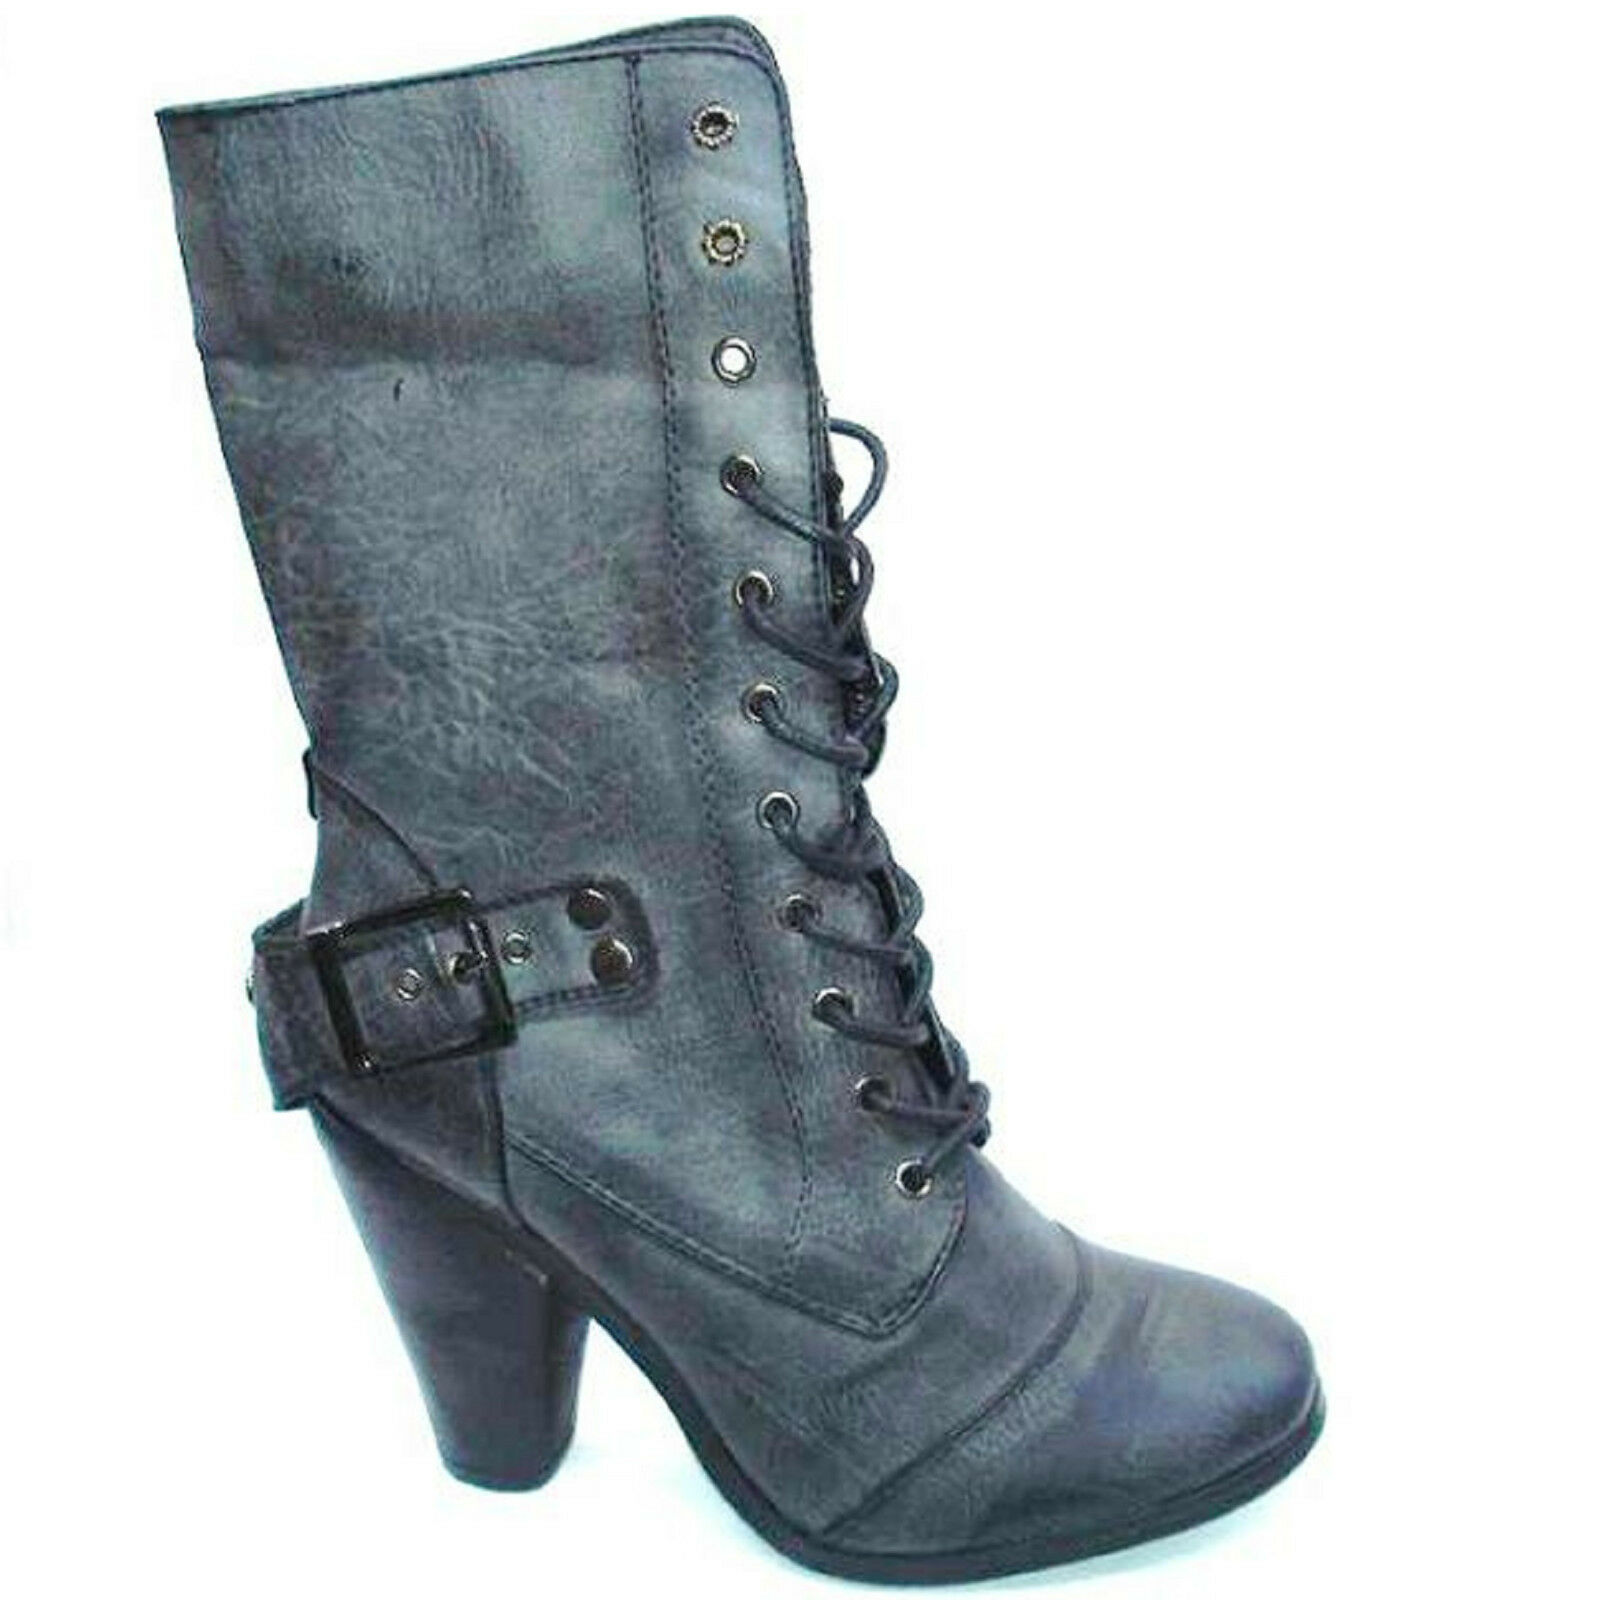 NEW WOMENS LADIES FASHION MILITARY ARMY SHOES HIGH HEEL ANKLE BOOTS SIZE UK F-85